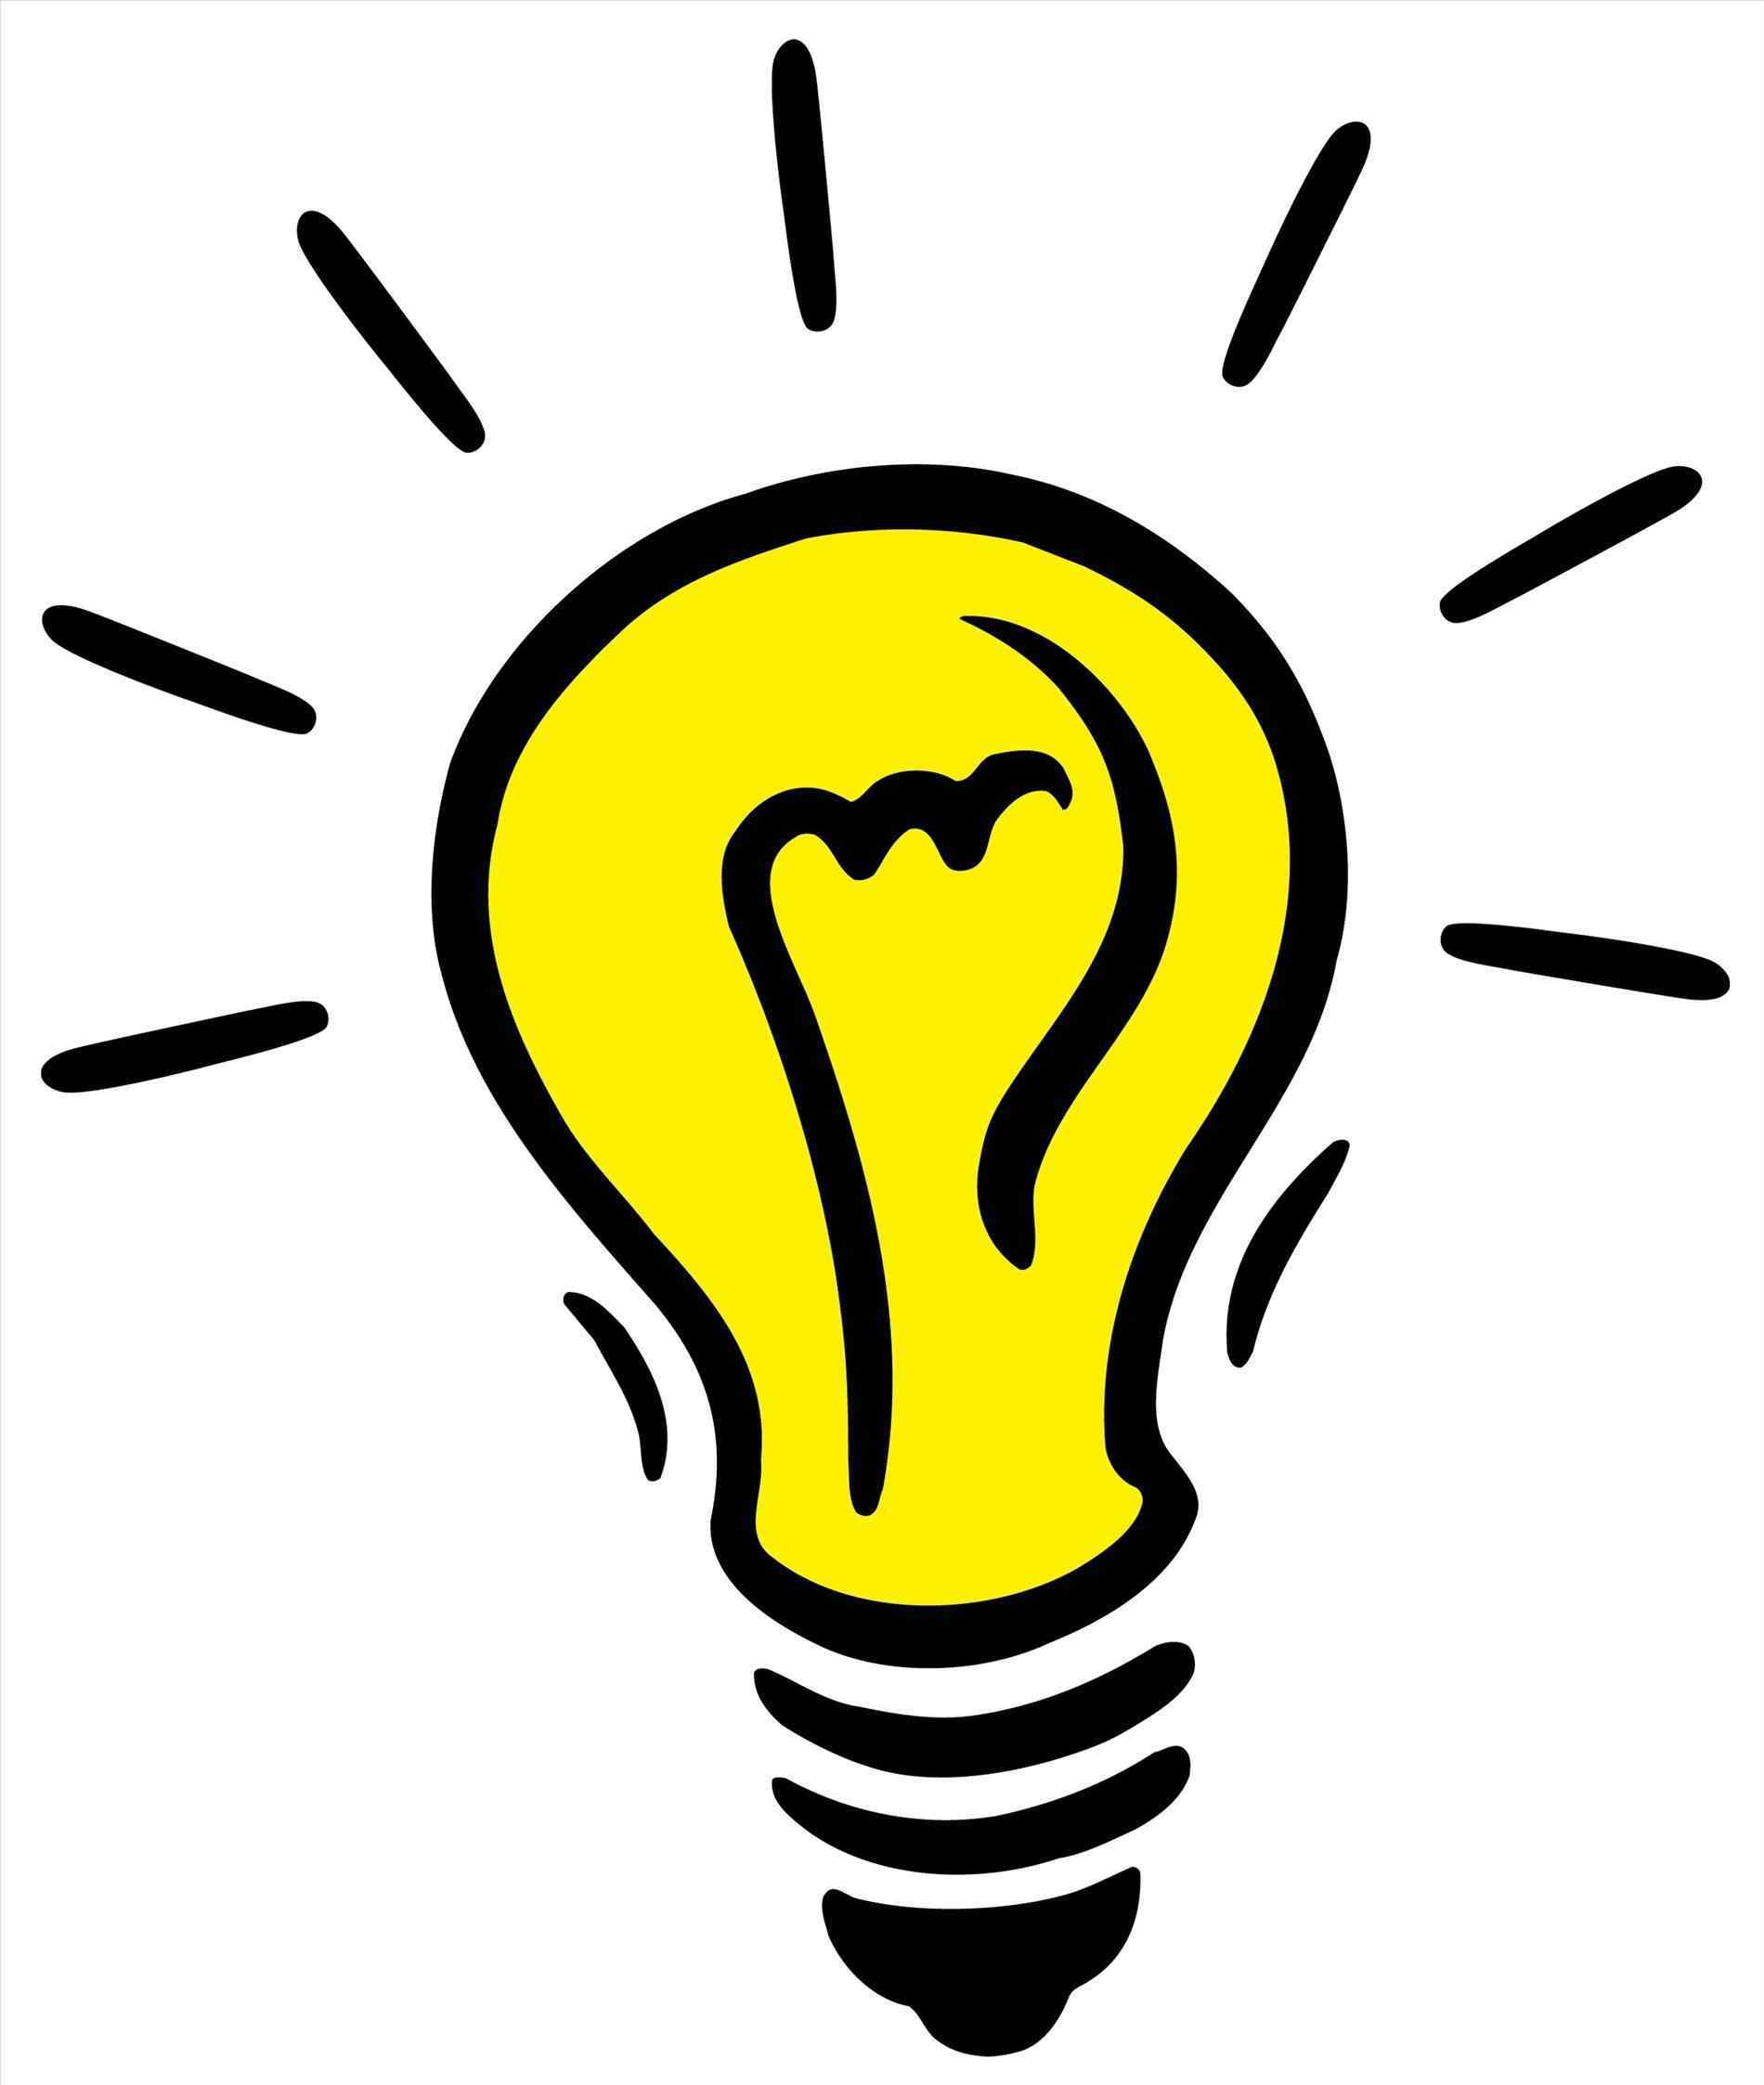 Lightbulb clipart bright light bulb. Idea transparent schedule and